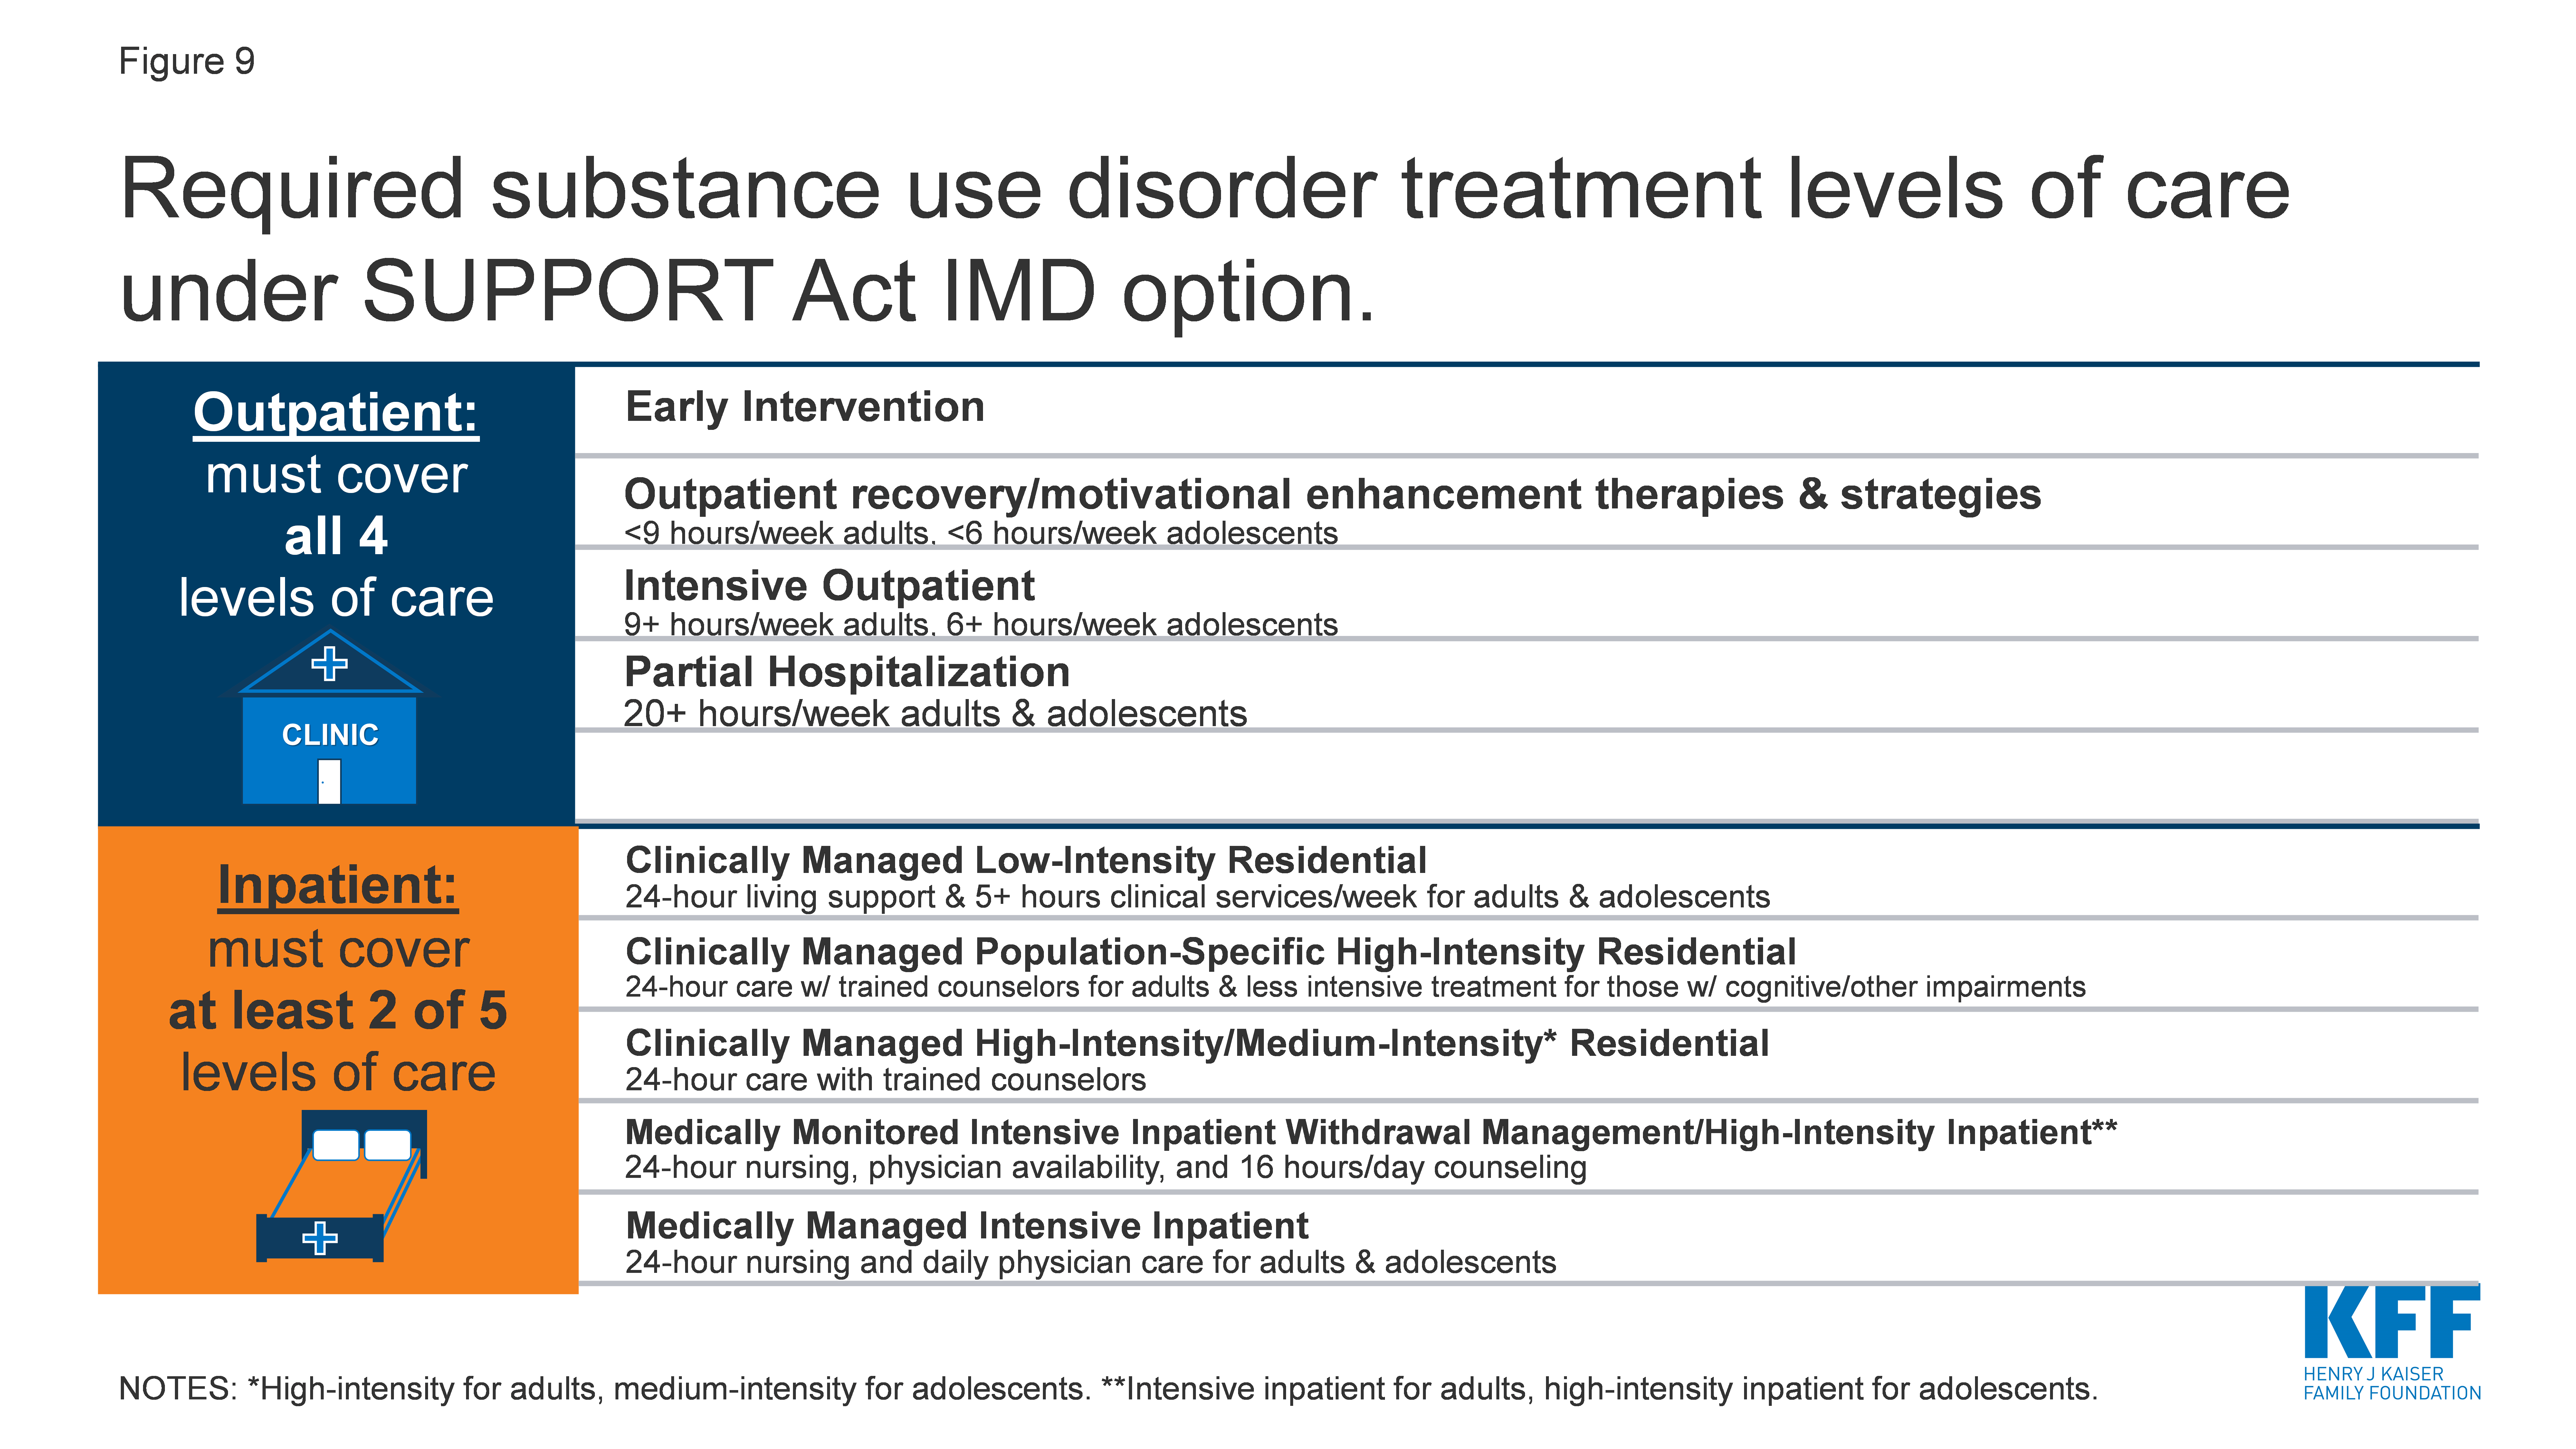 Required substance use disorder treatment levels of care under SUPPORT Act IMD option